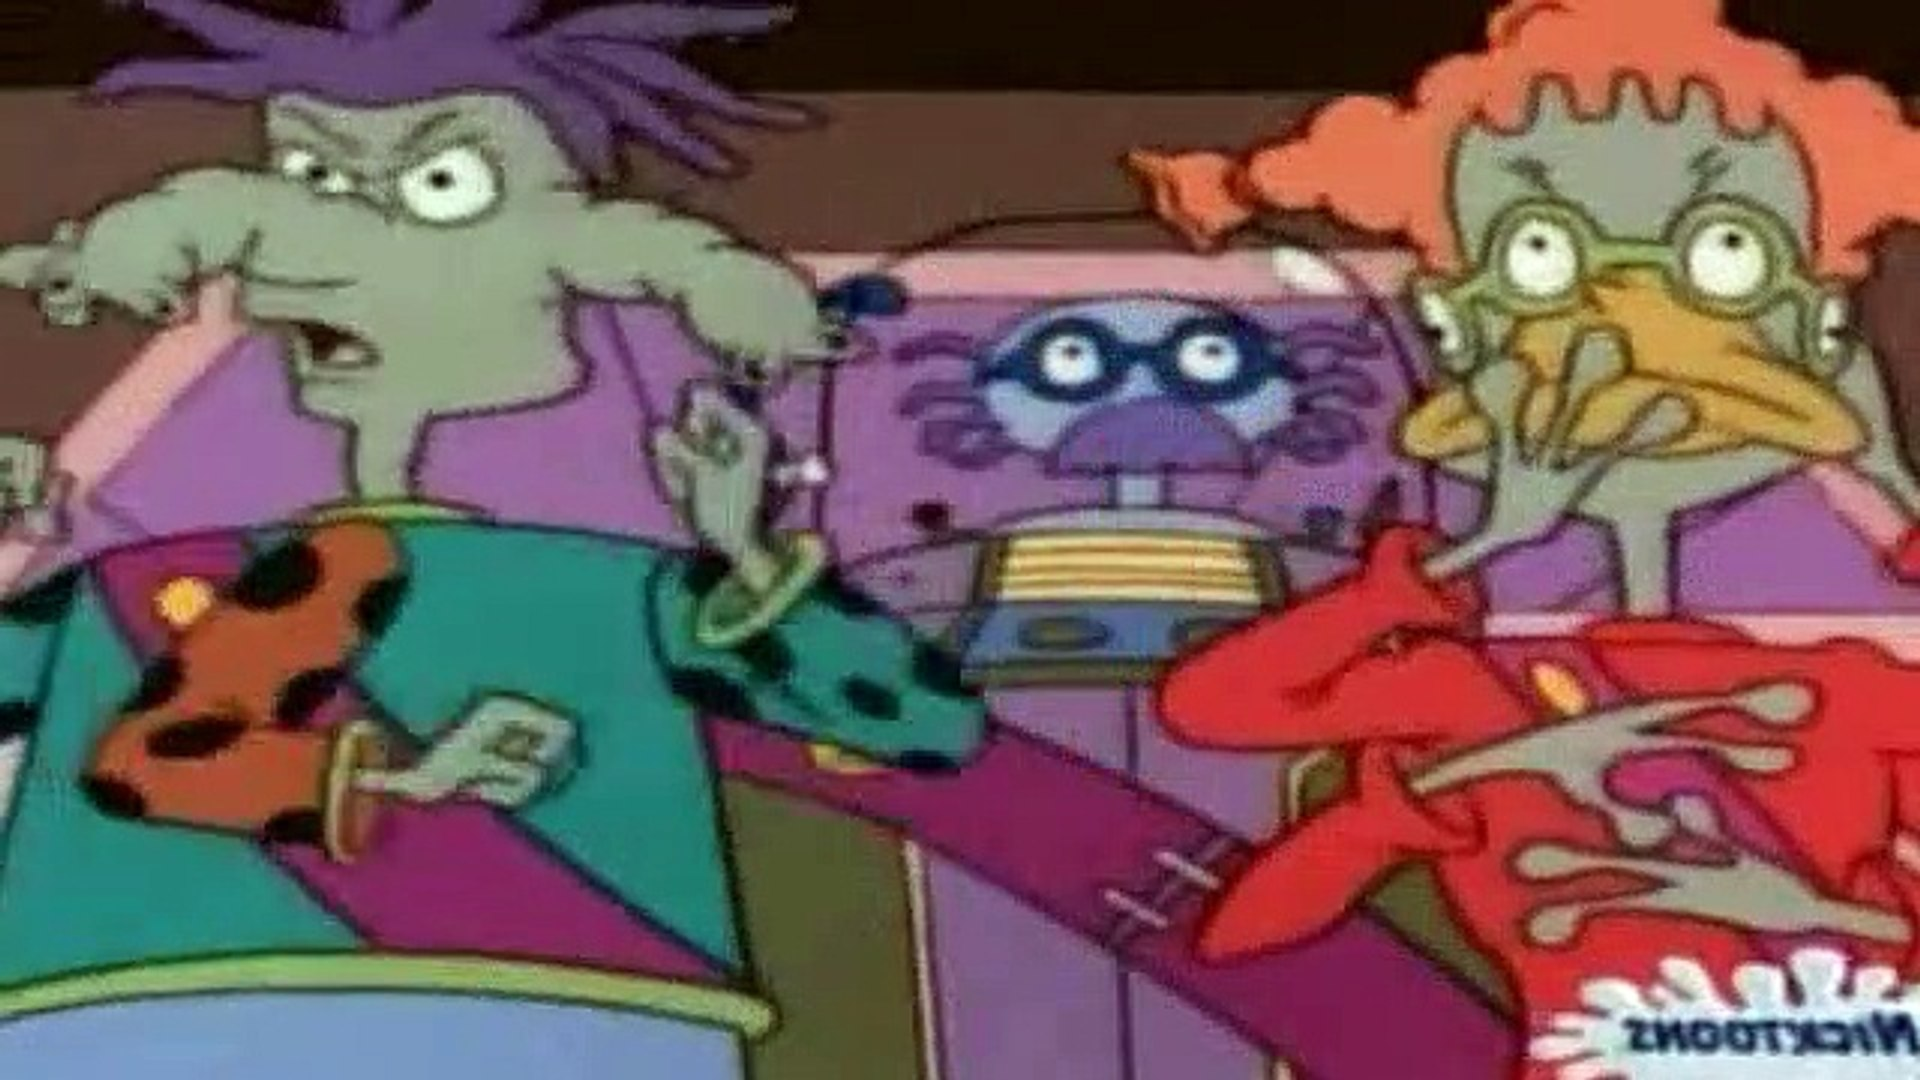 Rugrats Season 2 Episode 15 Visitors From Outer Space & The Case Of The Missing Rugrat